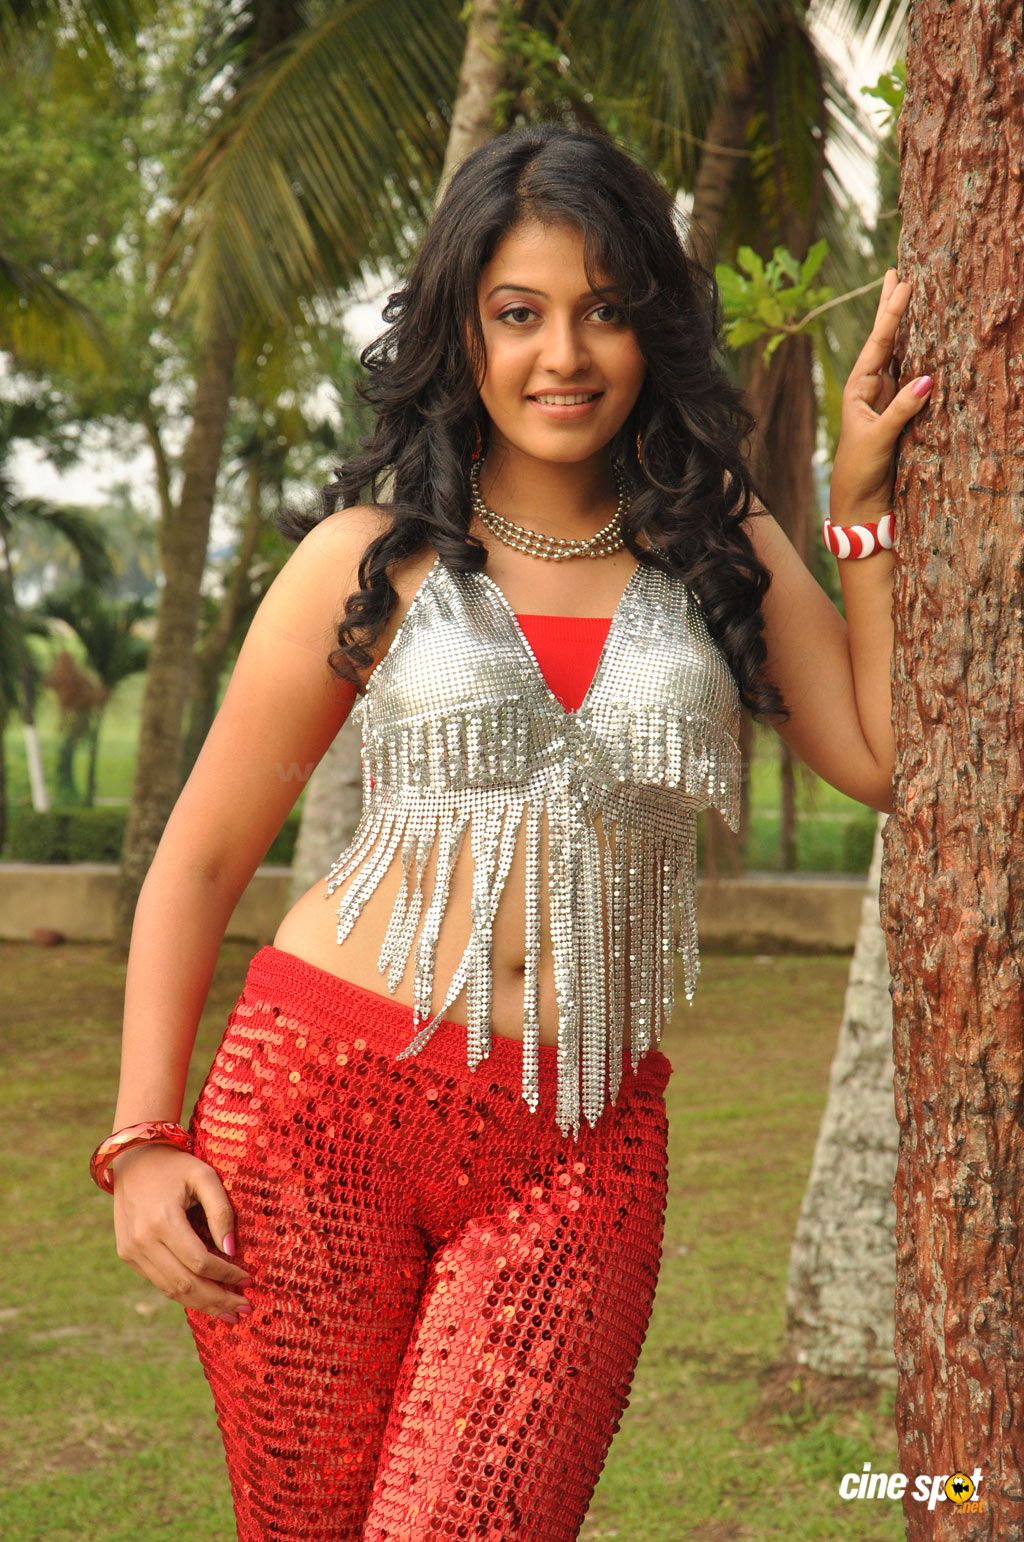 Indian Cinema Actress Anjali Hot Curvy Figure Enjoyed And -8423